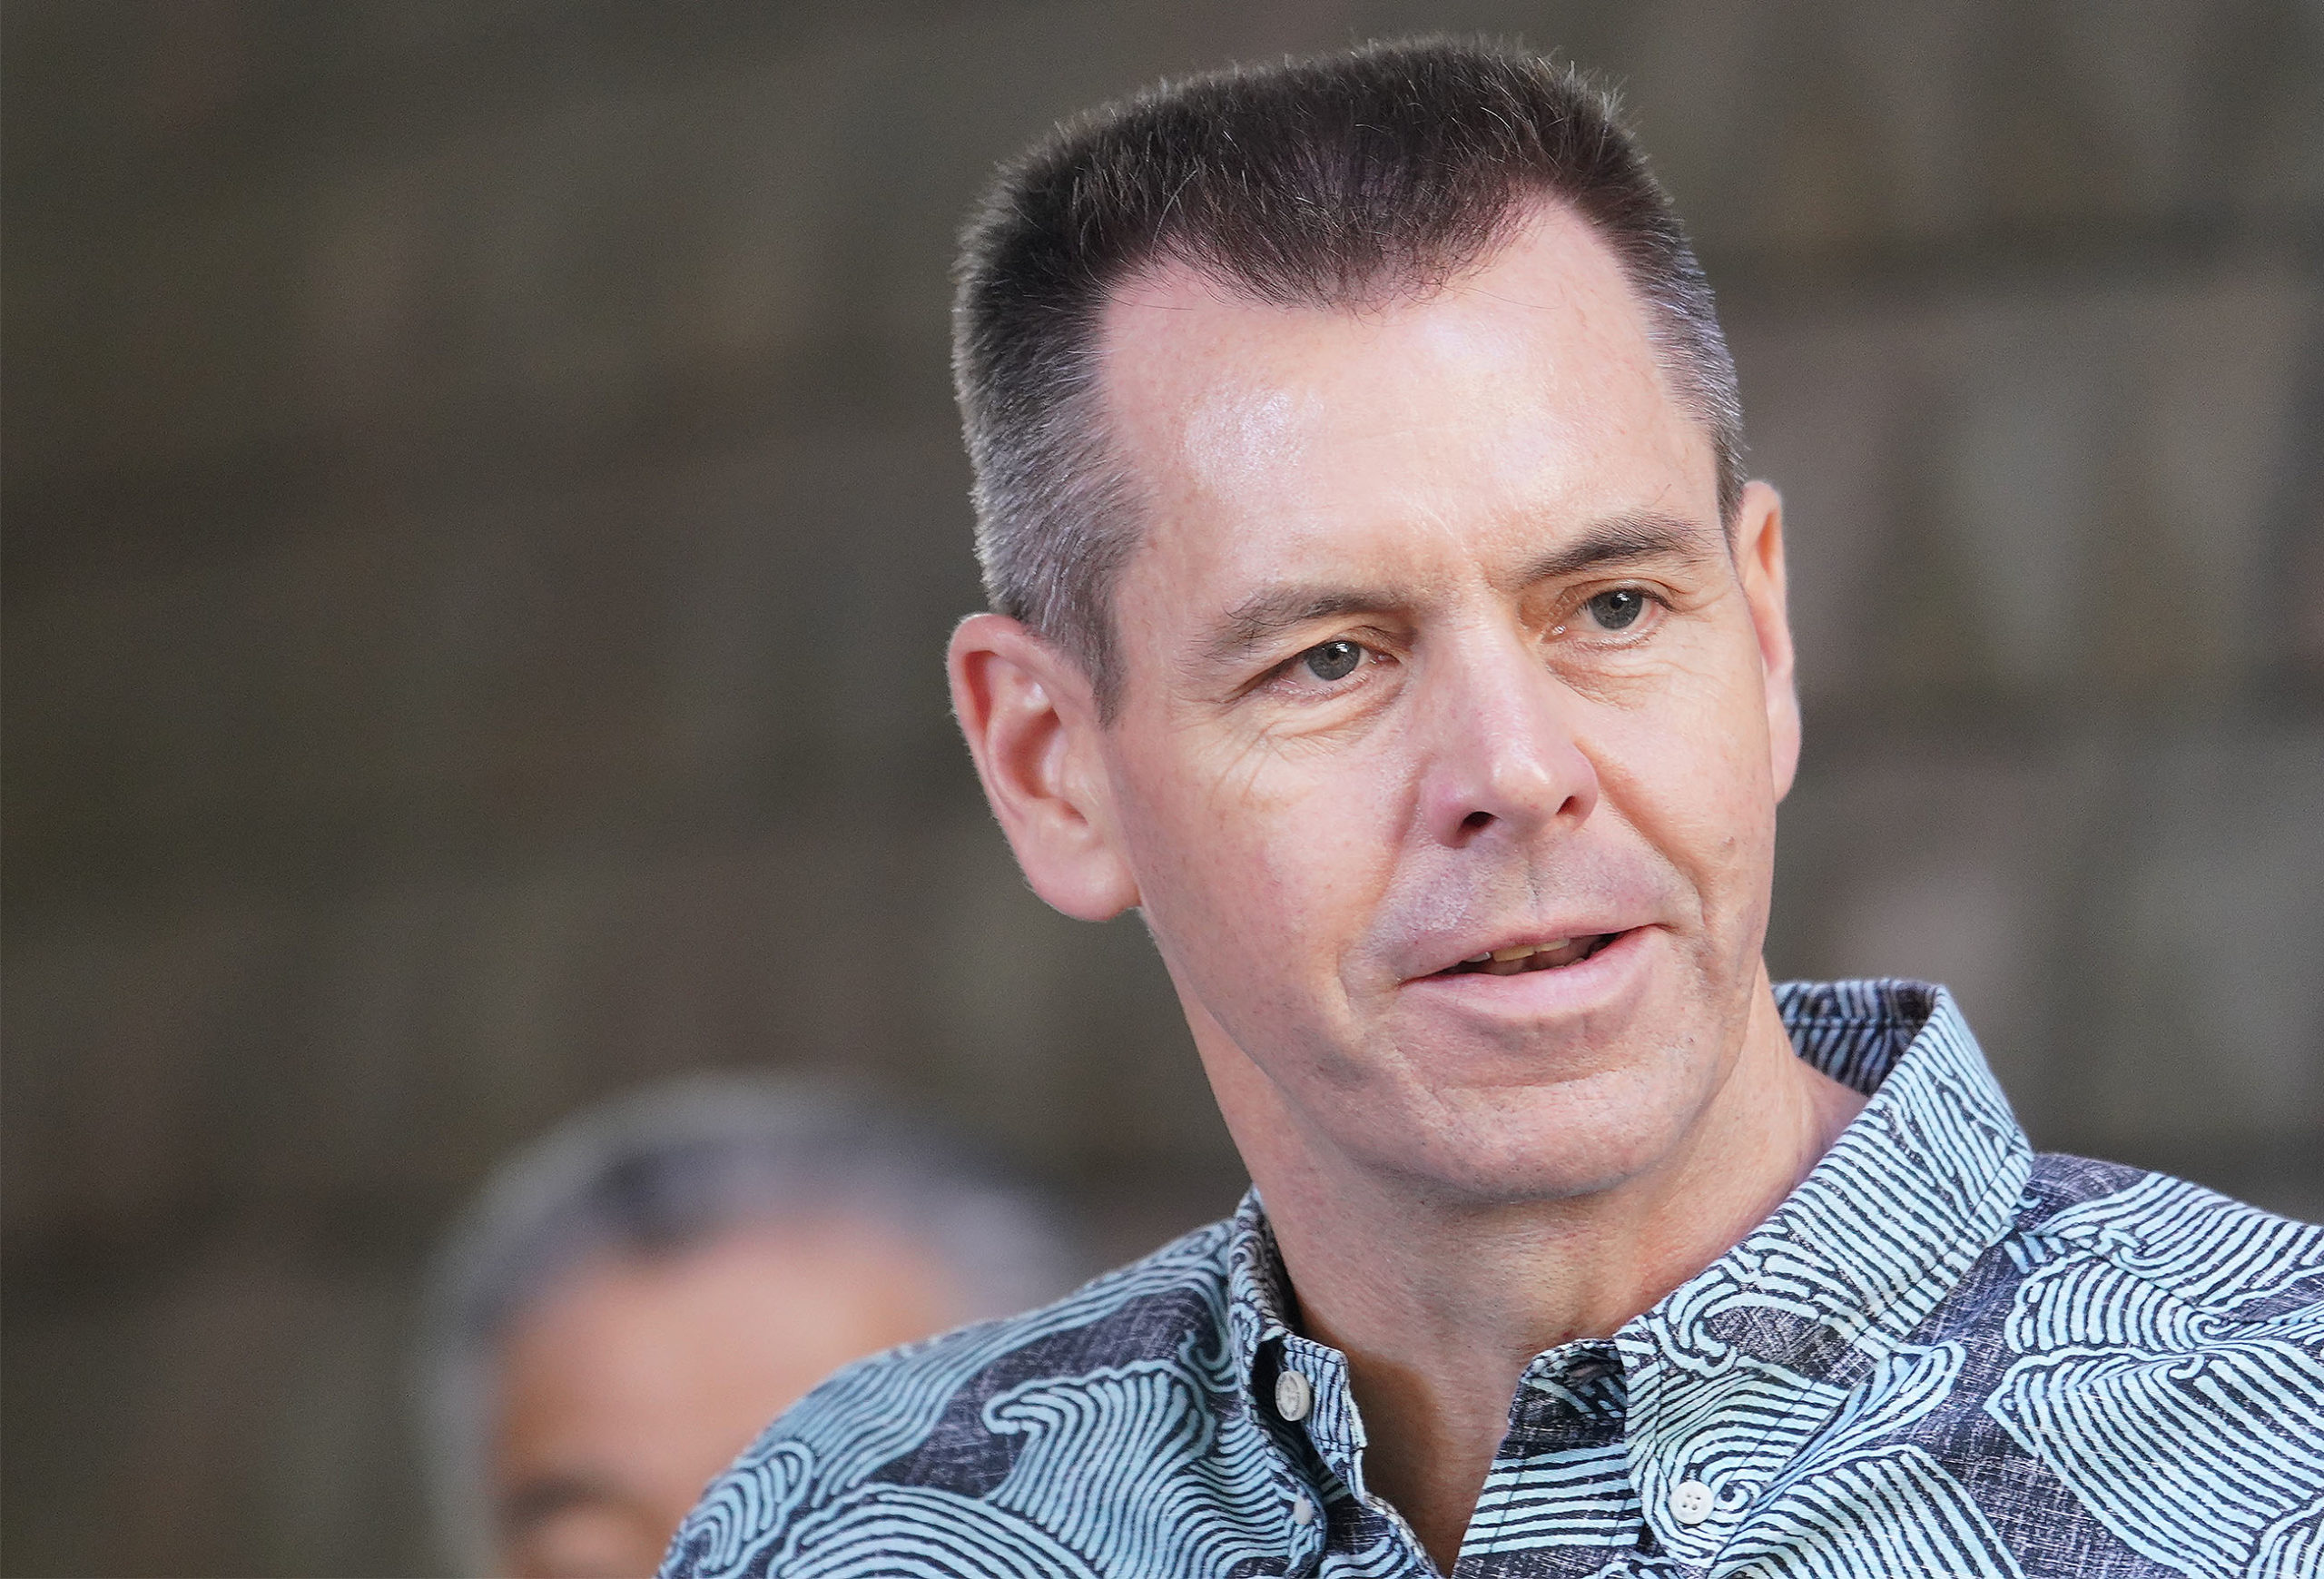 Hawaiian Airlines President CEO Peter Ingram answers questions at the Capitol during a press conference that Governor Ige announced mandatory 14 day self quarantine for incoming visitors to Hawaii.